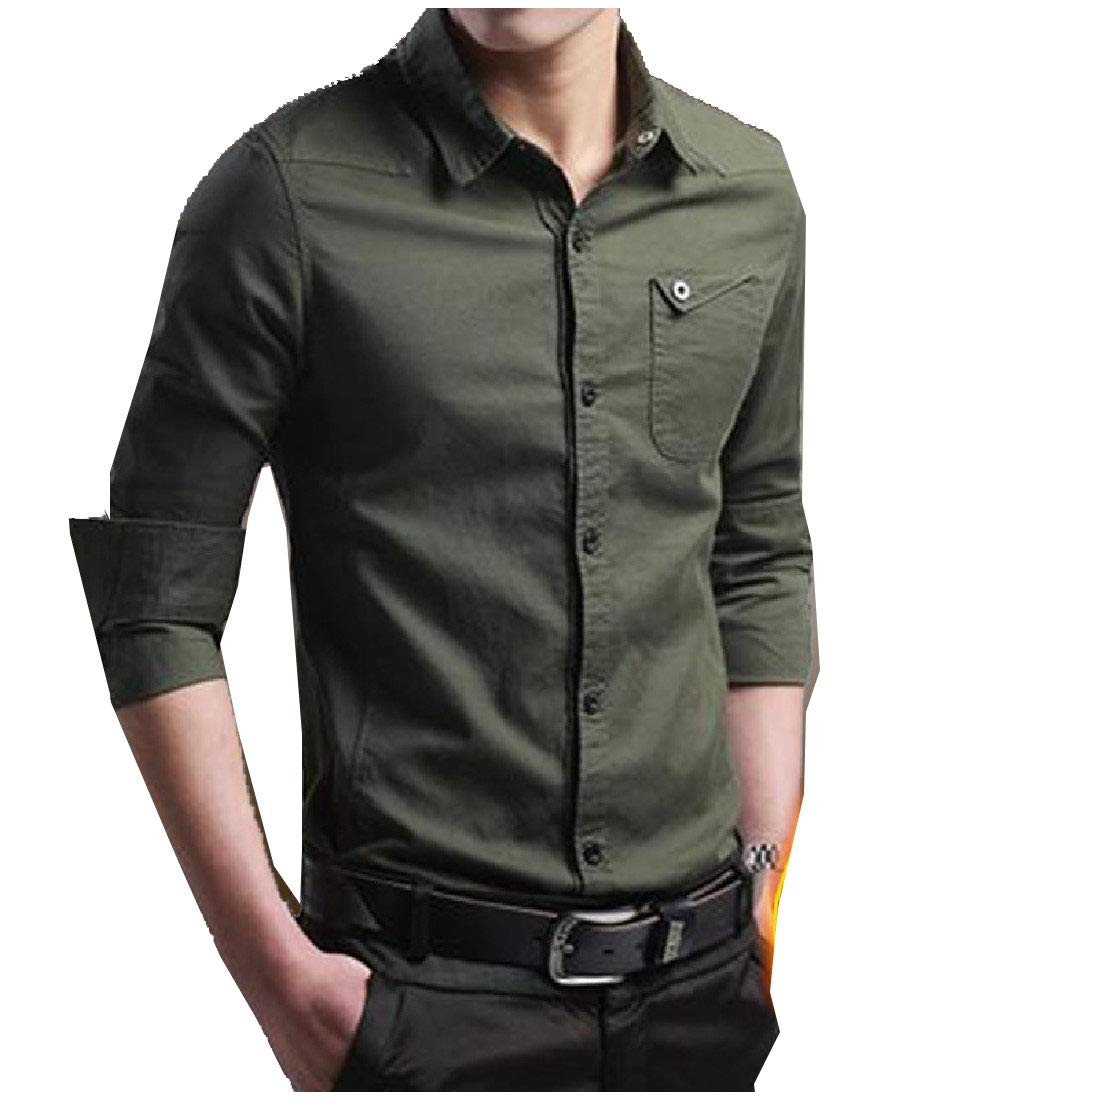 YUNY Mens Pure Color Lapel Long Sleeve Button Down Work Causal Shirt AS1 XS